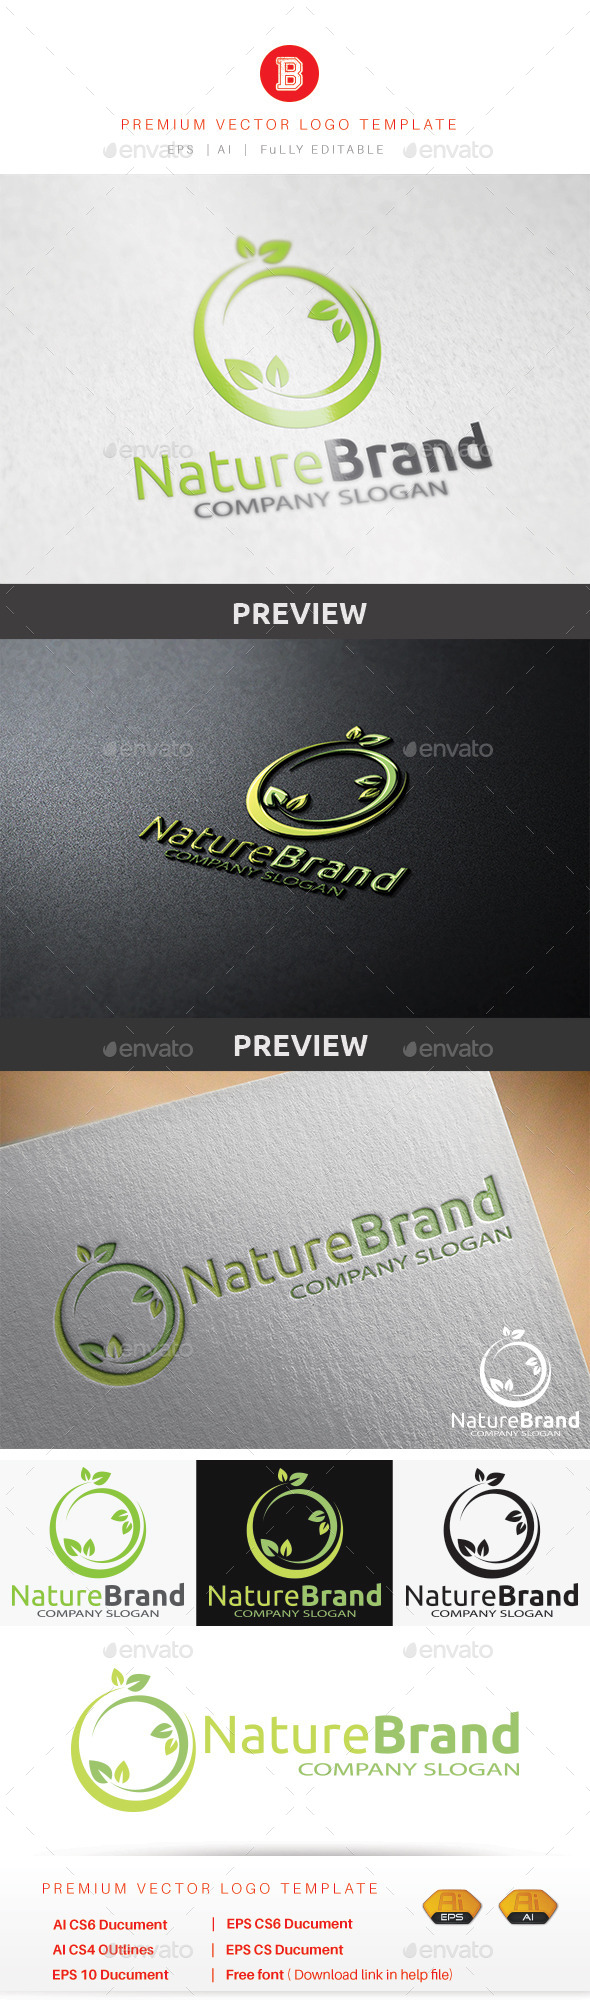 GraphicRiver Nature Brand 8935522